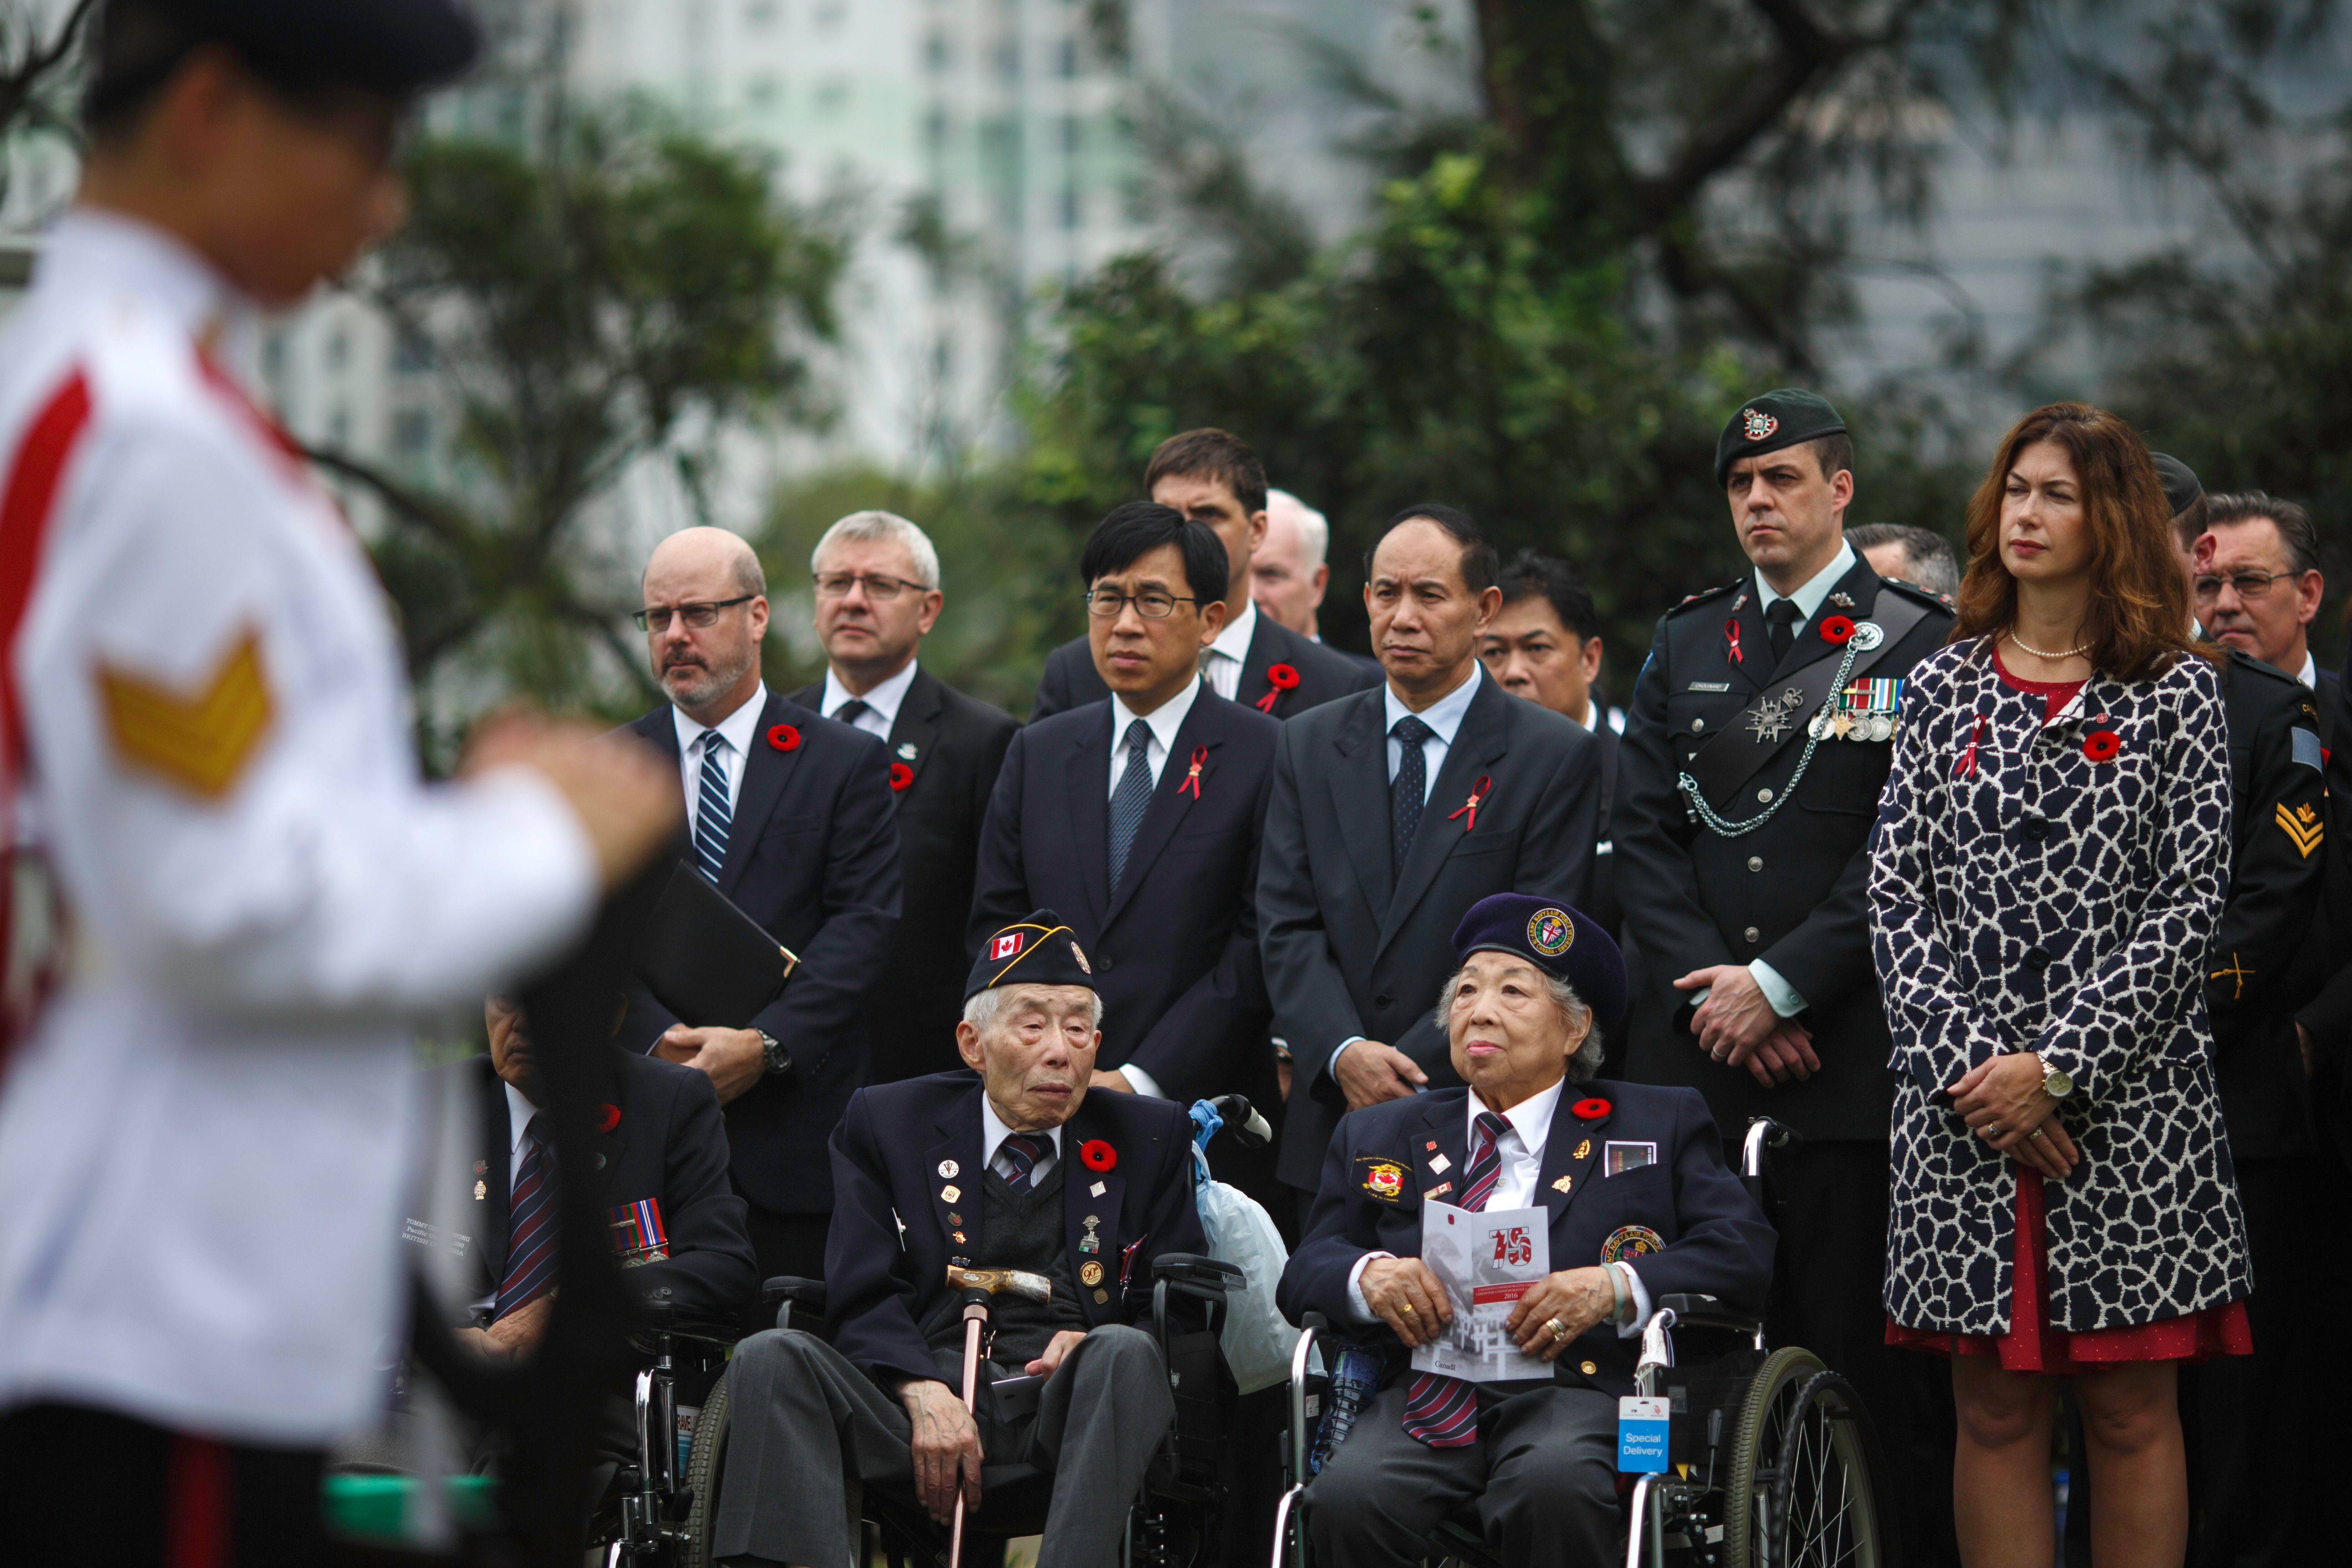 Hong Kong World War II veterans, front row, and attendees, including relatives of World War II veterans, attend the Canadian commemorative ceremony in Hong Kong's Sai Wan War Cemetery on Dec. 4, 2016, honoring those who died during the Battle of Hong Kong and World War II